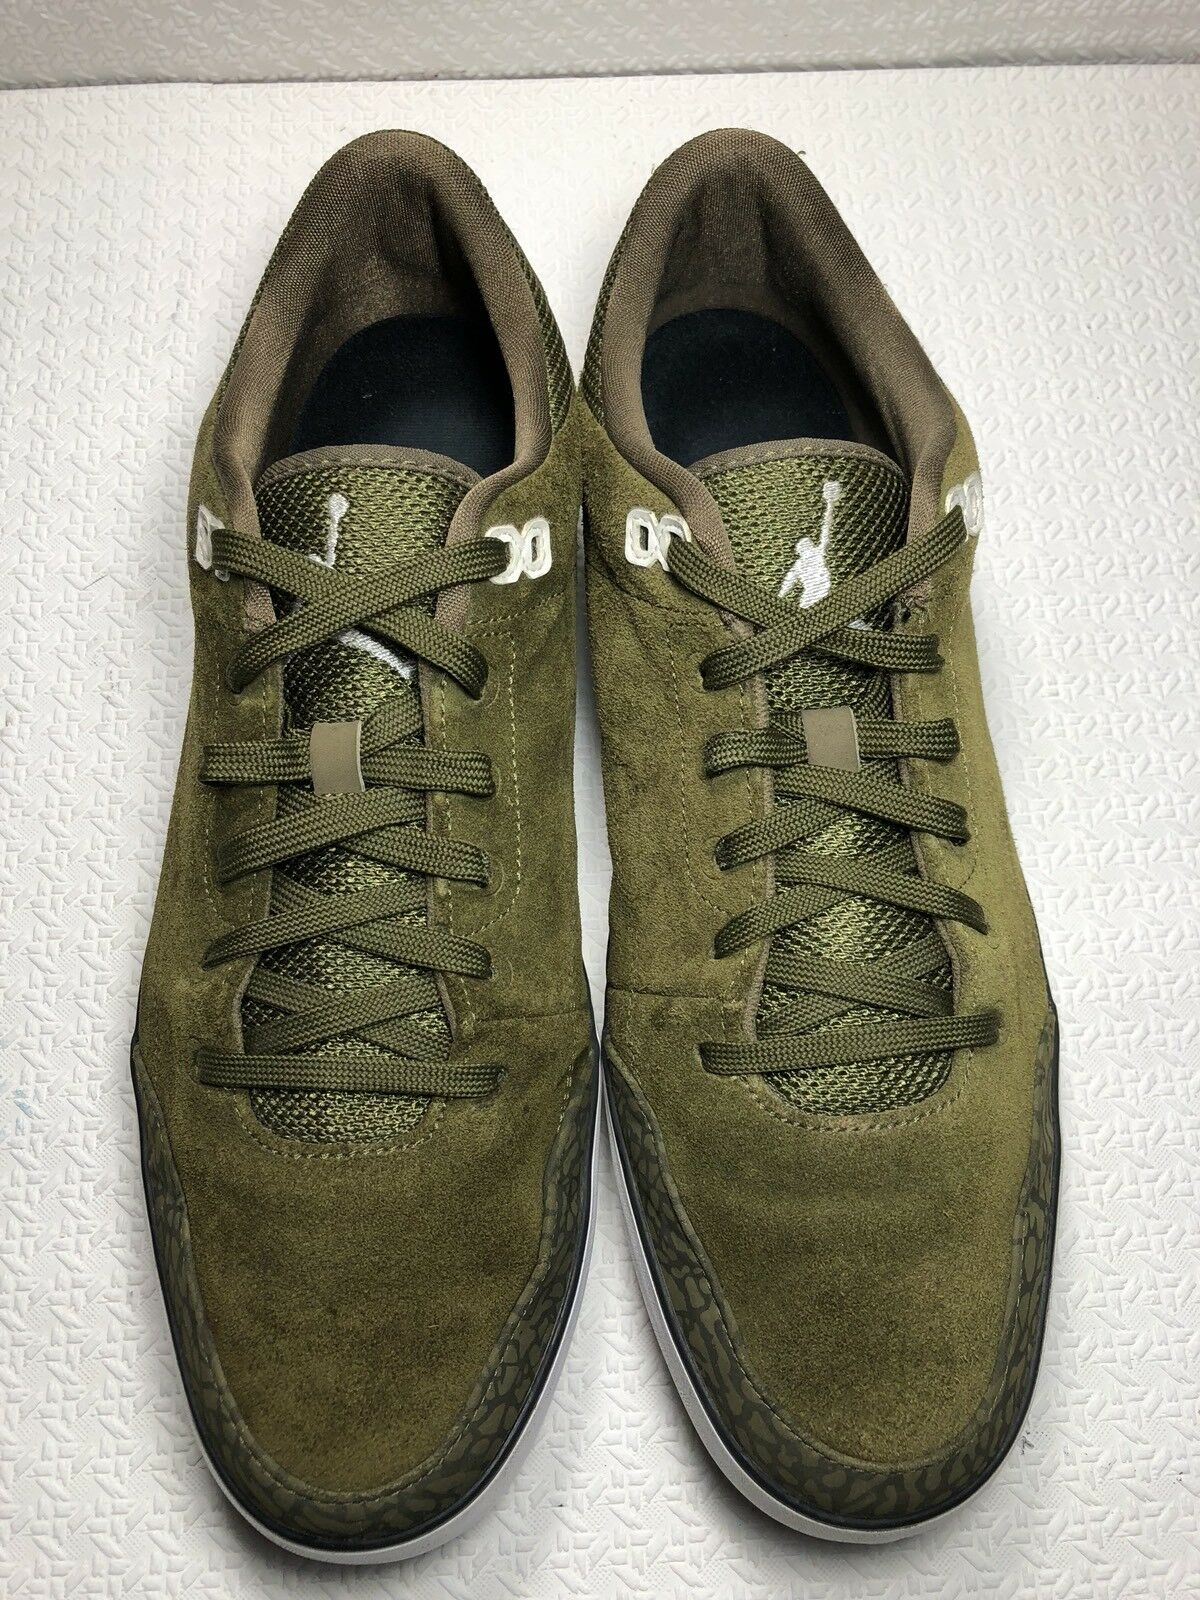 Nike Jordan Court AC1-579607-301 Men's Green Suede Leather Shoes Comfortable